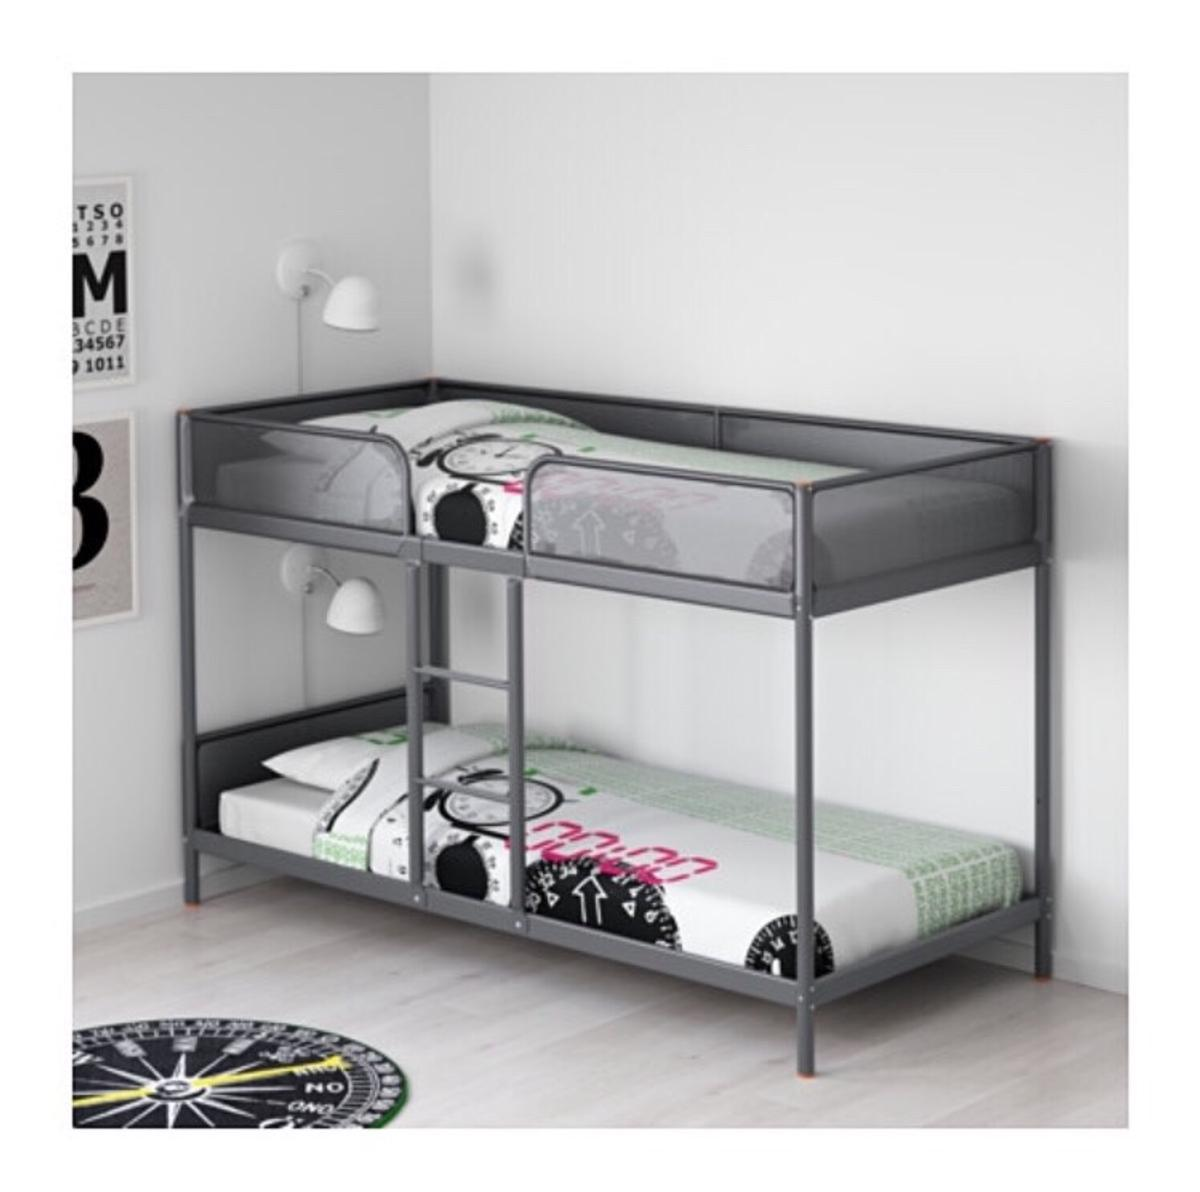 Ikea Tuffing Bunk Bed